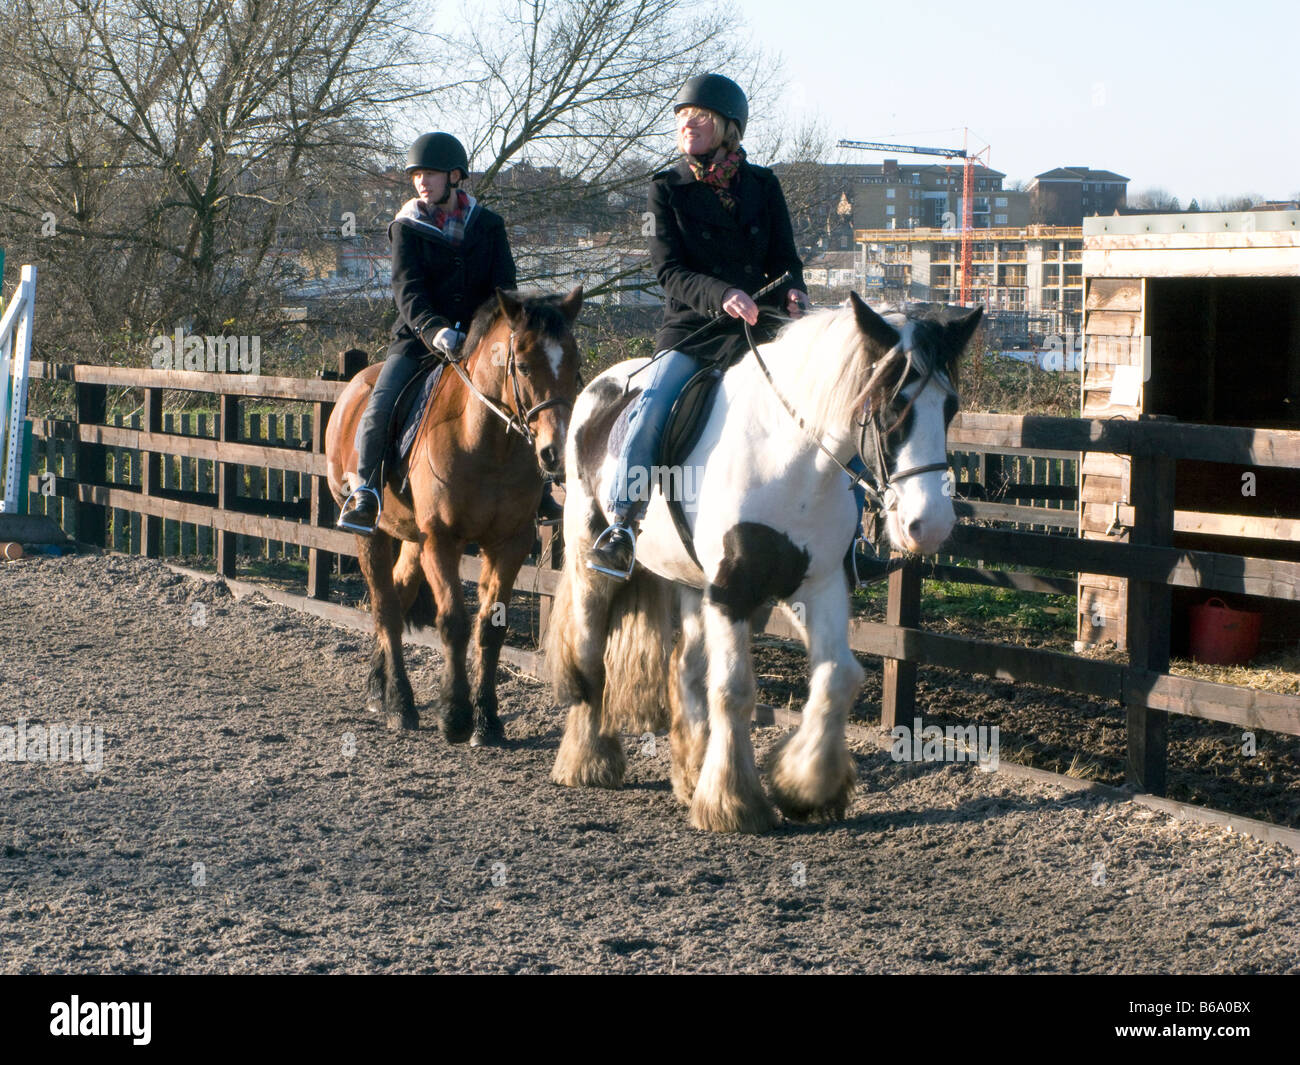 INSTRUCTOR TEACHING SCHOOL CHILDREN TO RIDE AT A RIDING SCHOOL LONDON, UK. Photo ©Julio Etchart - Stock Image